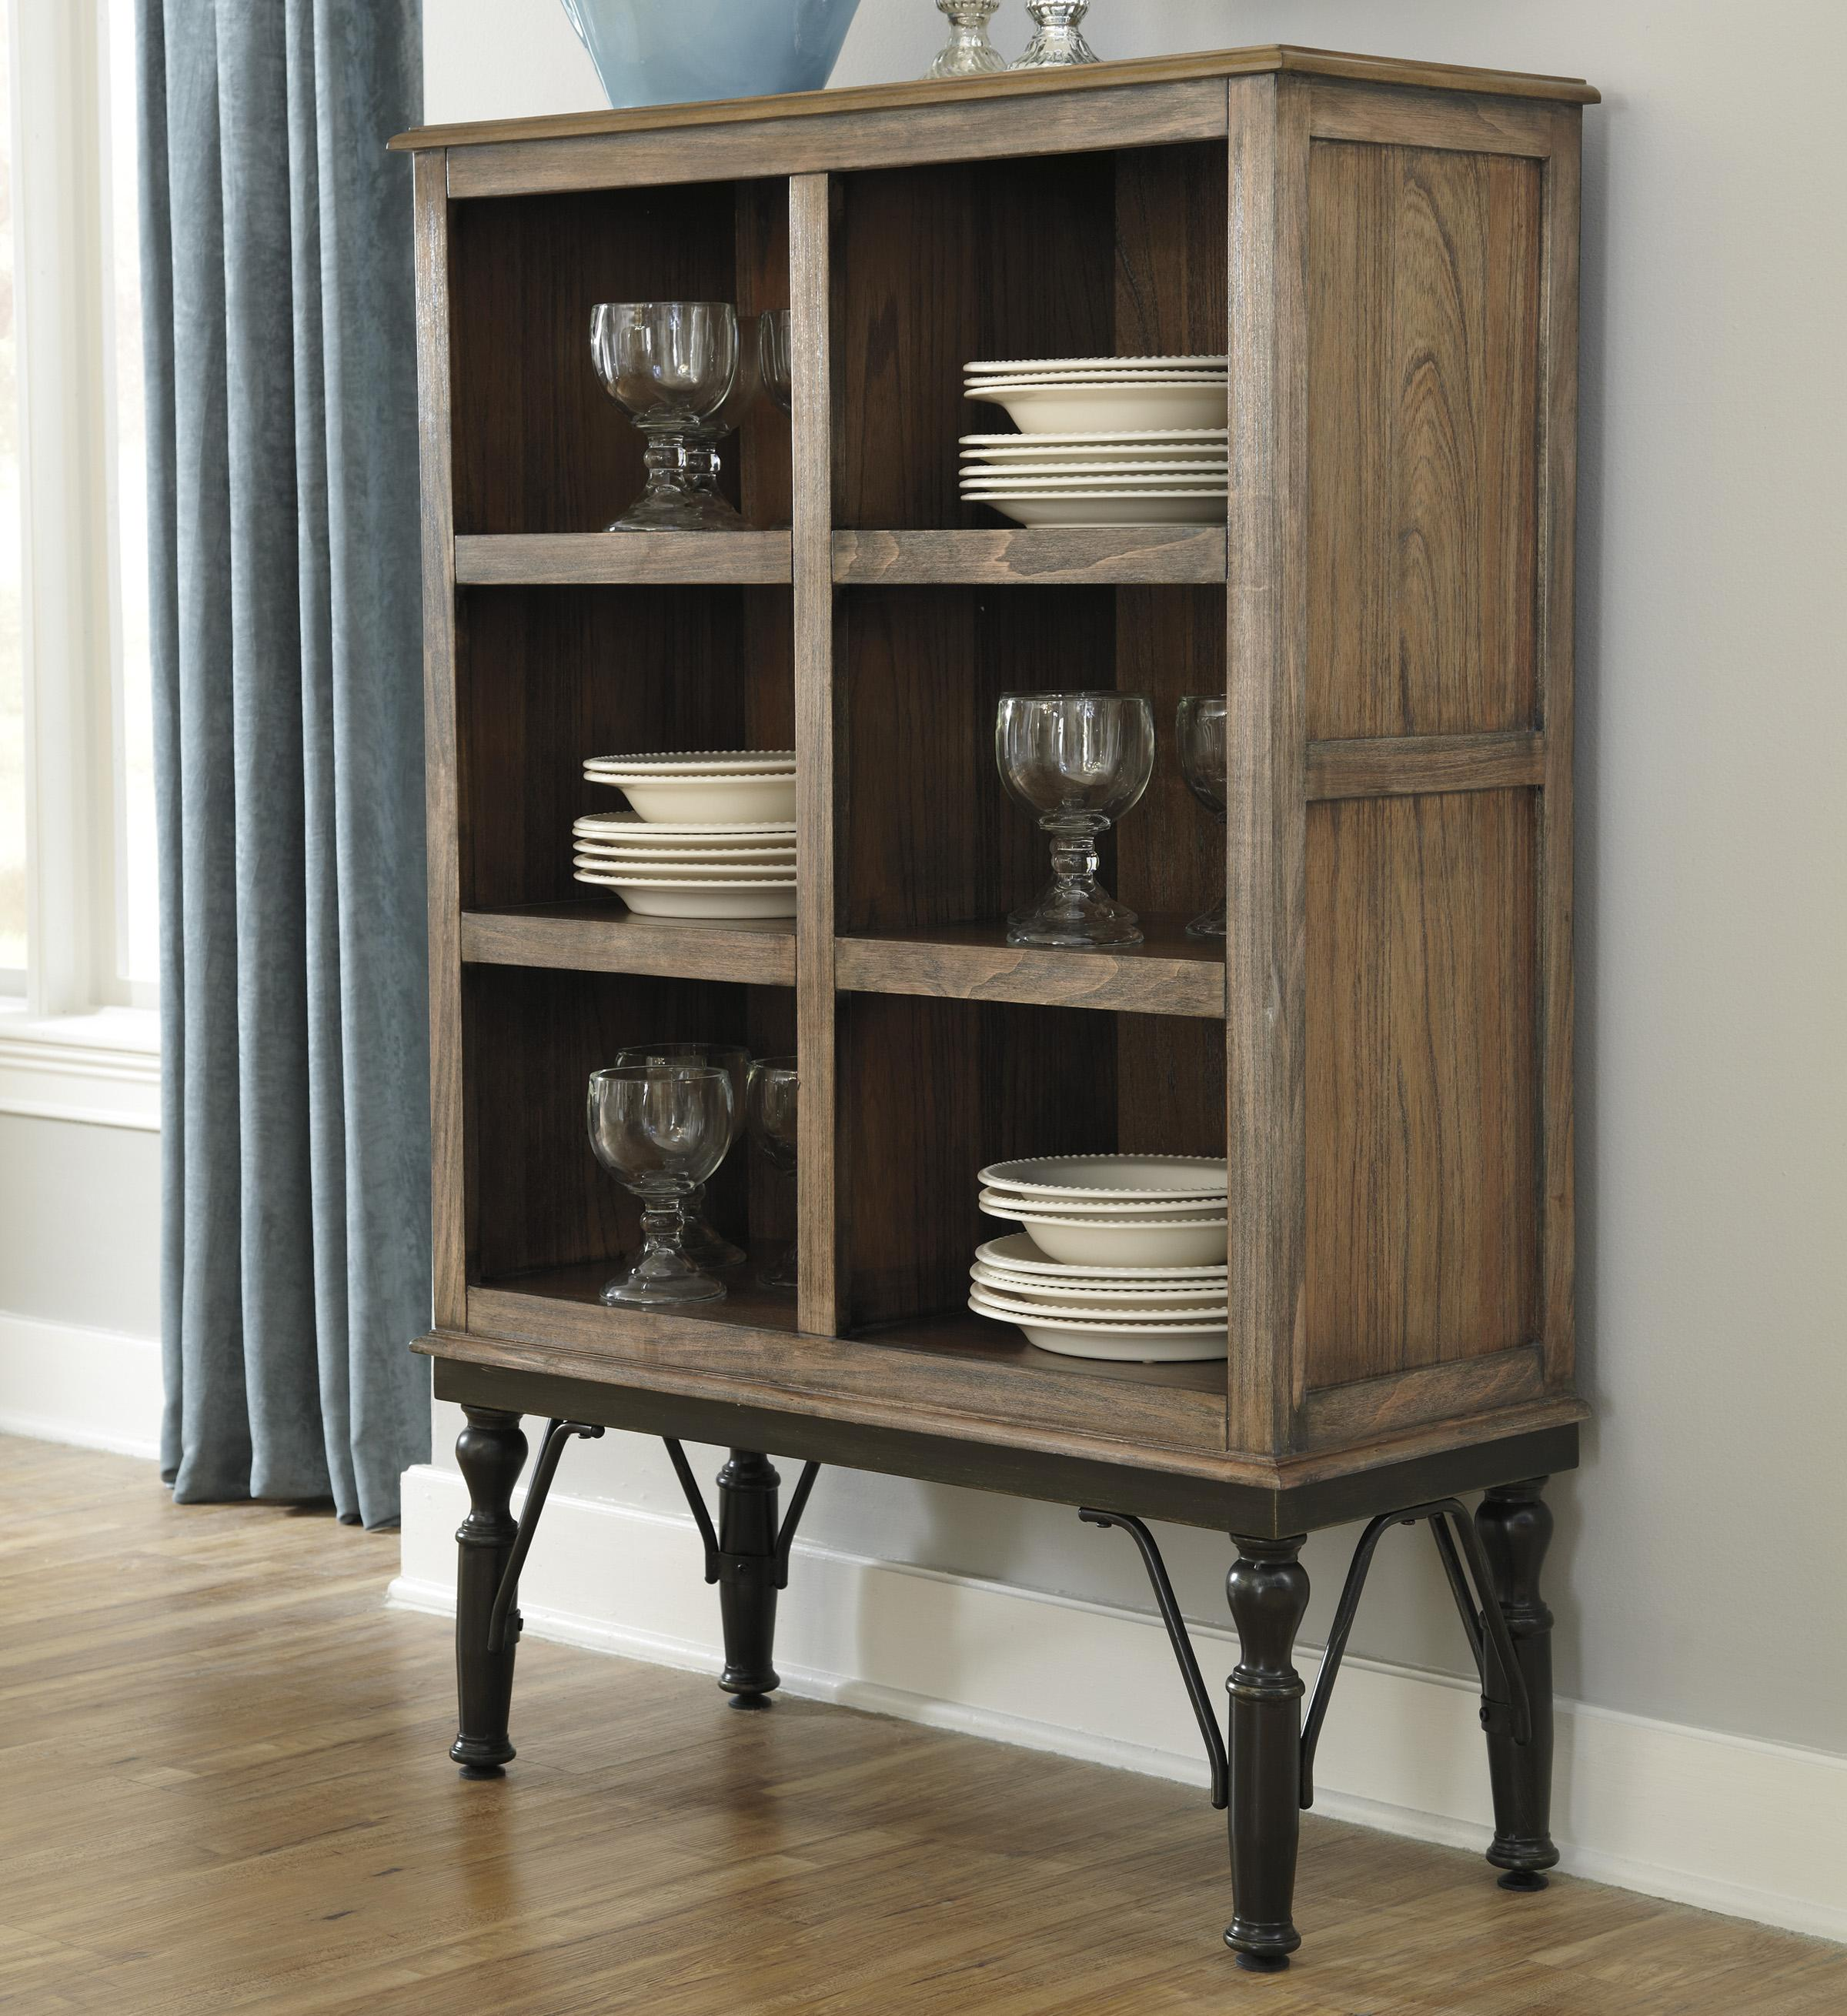 Signature Design by Ashley Tripton Dining Room Server - Item Number: D530-76